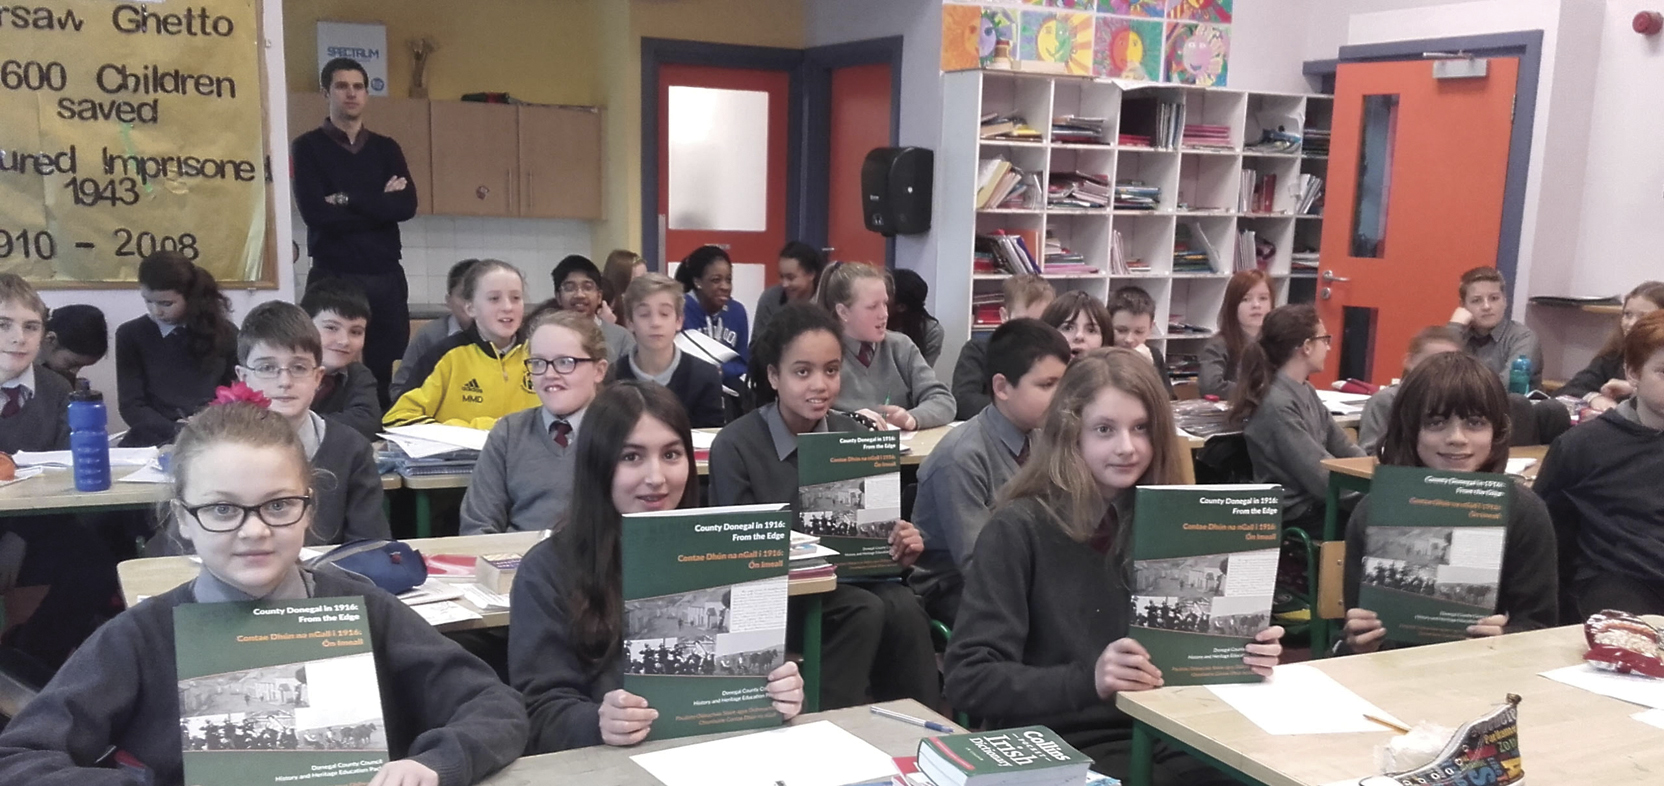 Children from  Illistrin National School receive copies of County Donegal in 1916: From the Edge, History and Heritage Education Pack, February 2016. (Photo: Eileen Burgess)